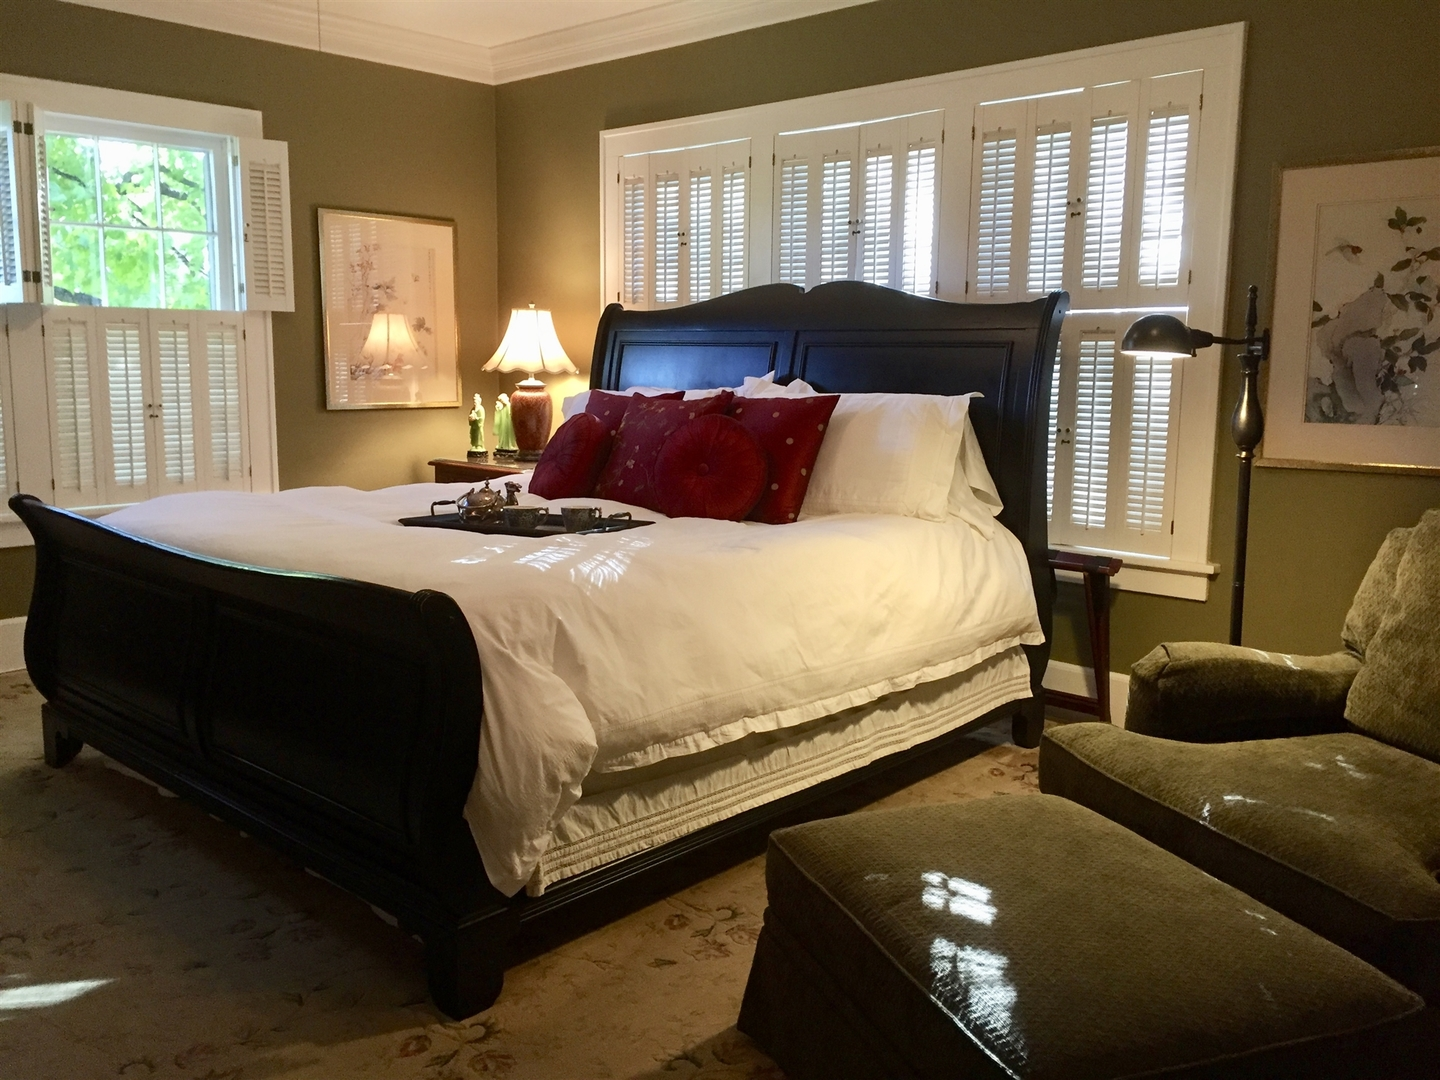 A bedroom with a large bed in a hotel room at Sidwell Friends Bed and Breakfast.